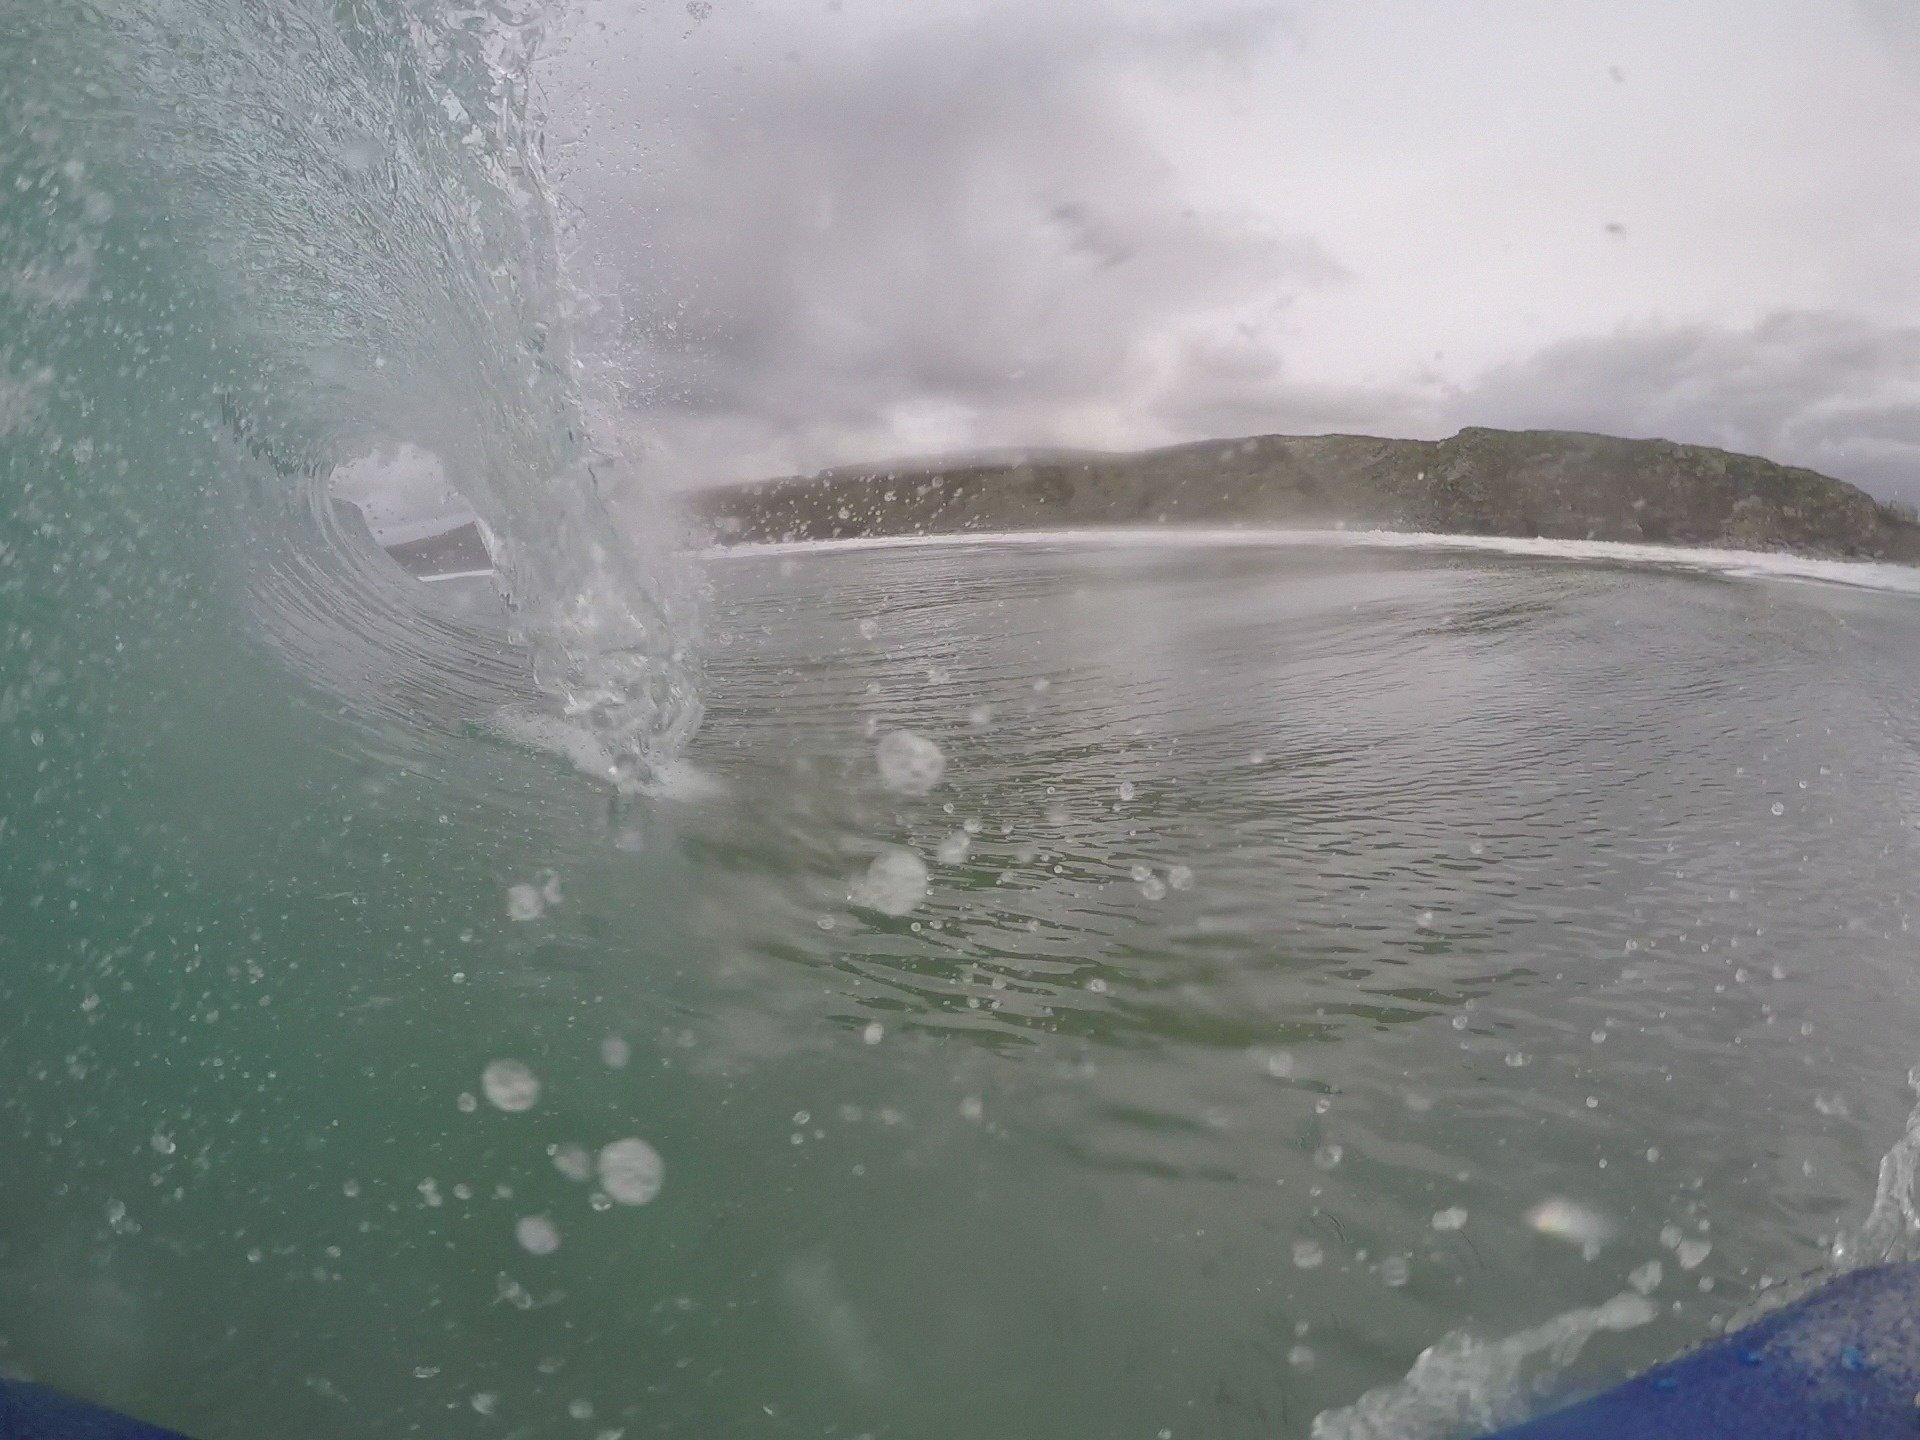 Phill Underwood Photography's photo of Watergate Bay